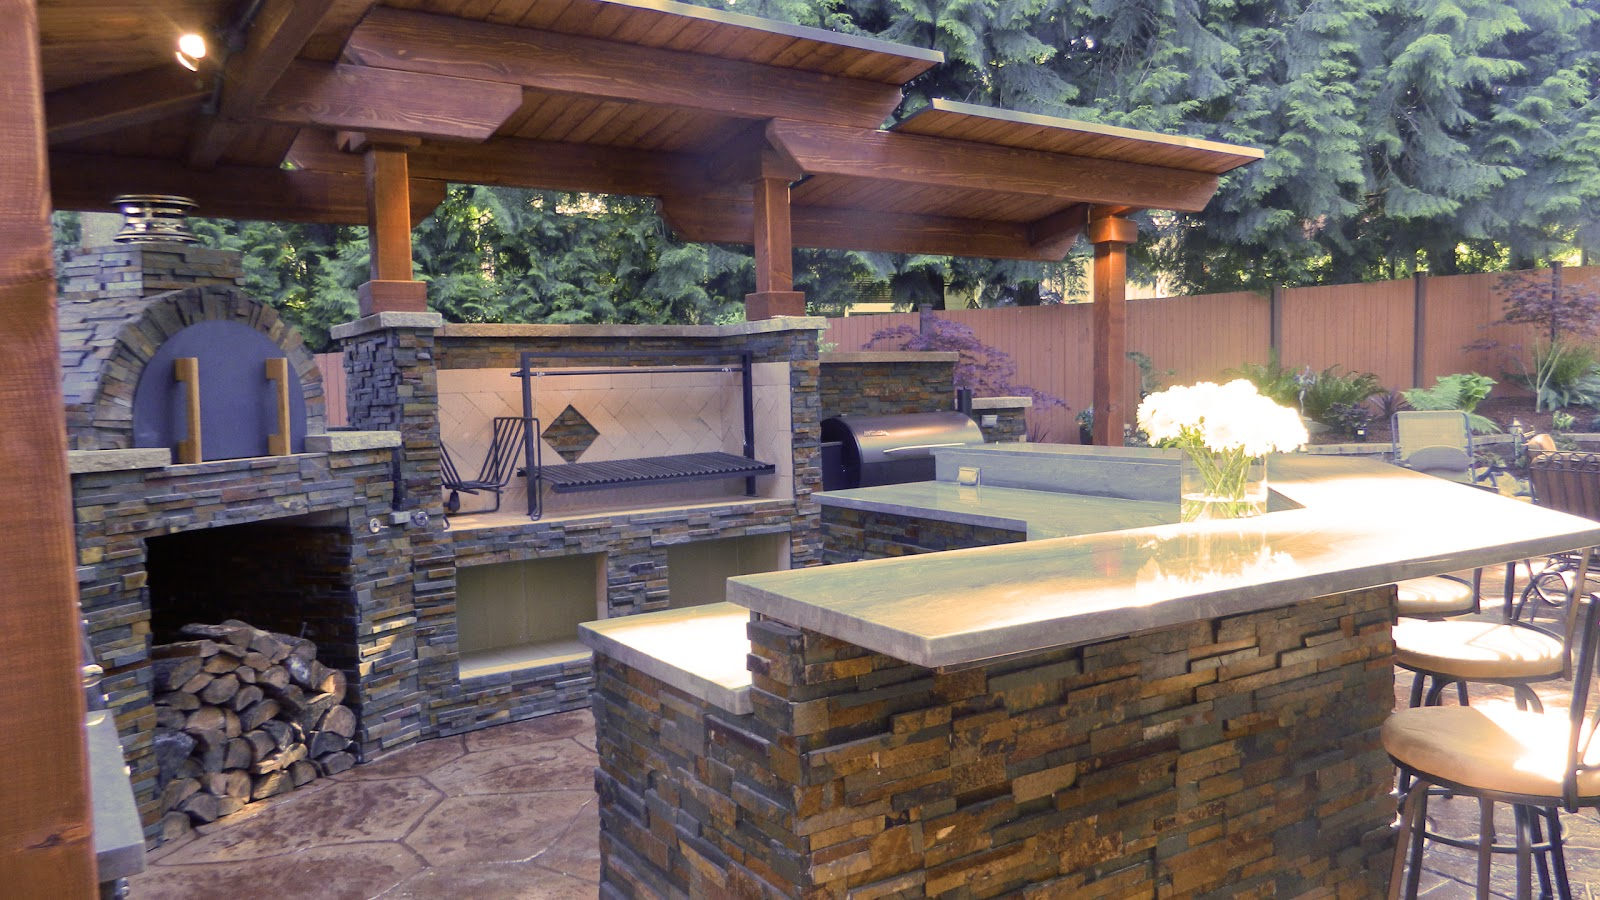 BrickWood Ovens Outdoor Kitchen With Argentinian Grill BrickWood Pizza Oven